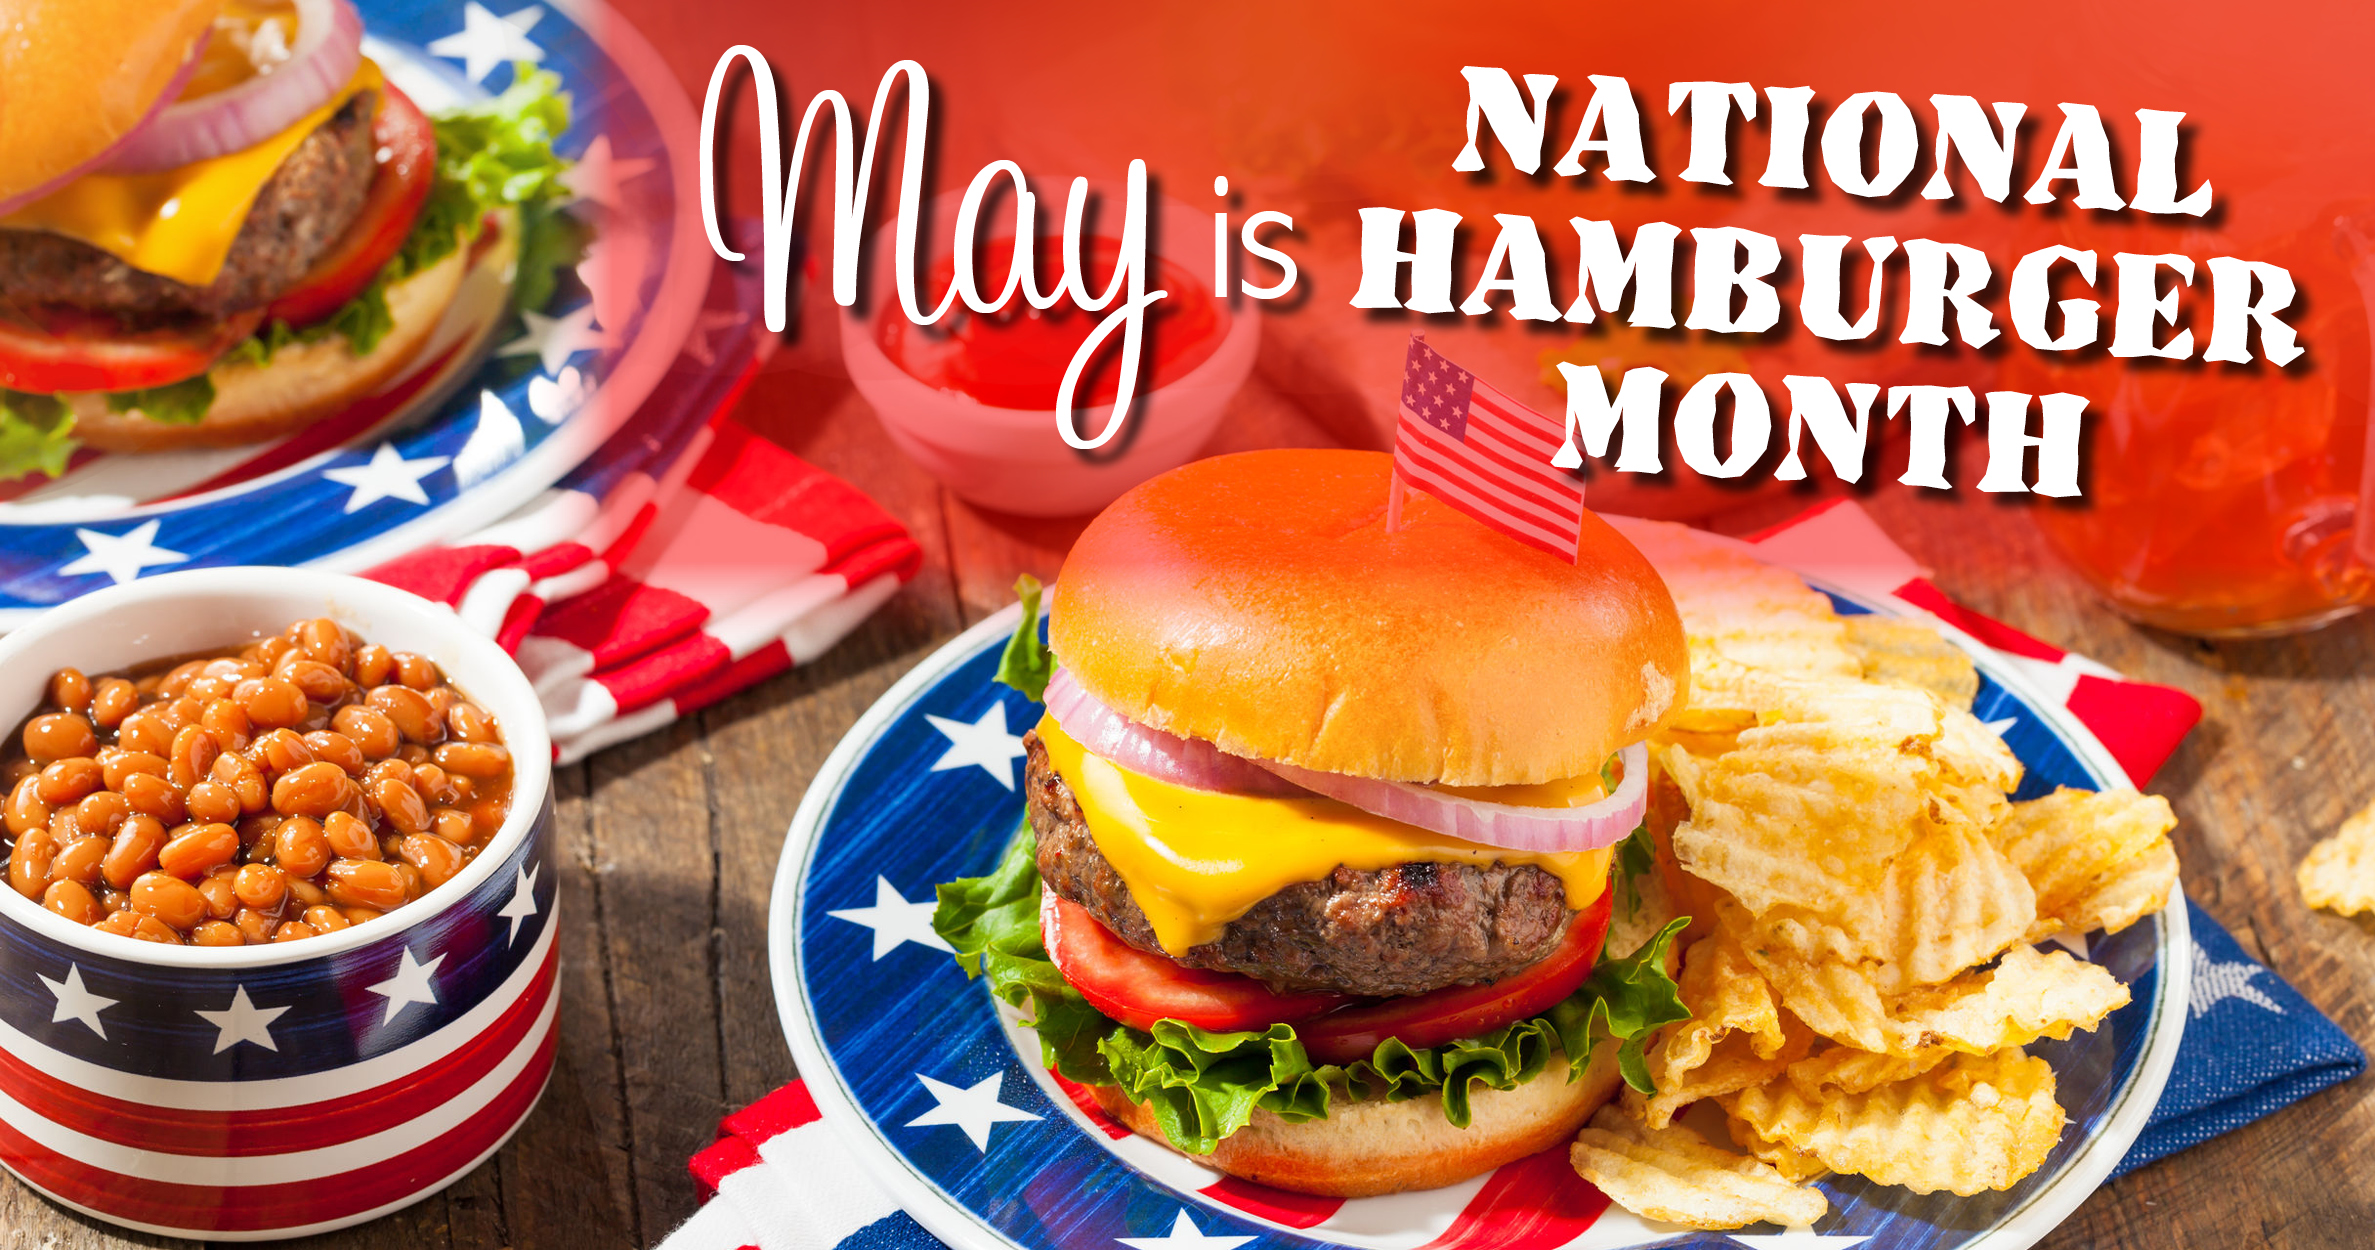 Hamburger Month